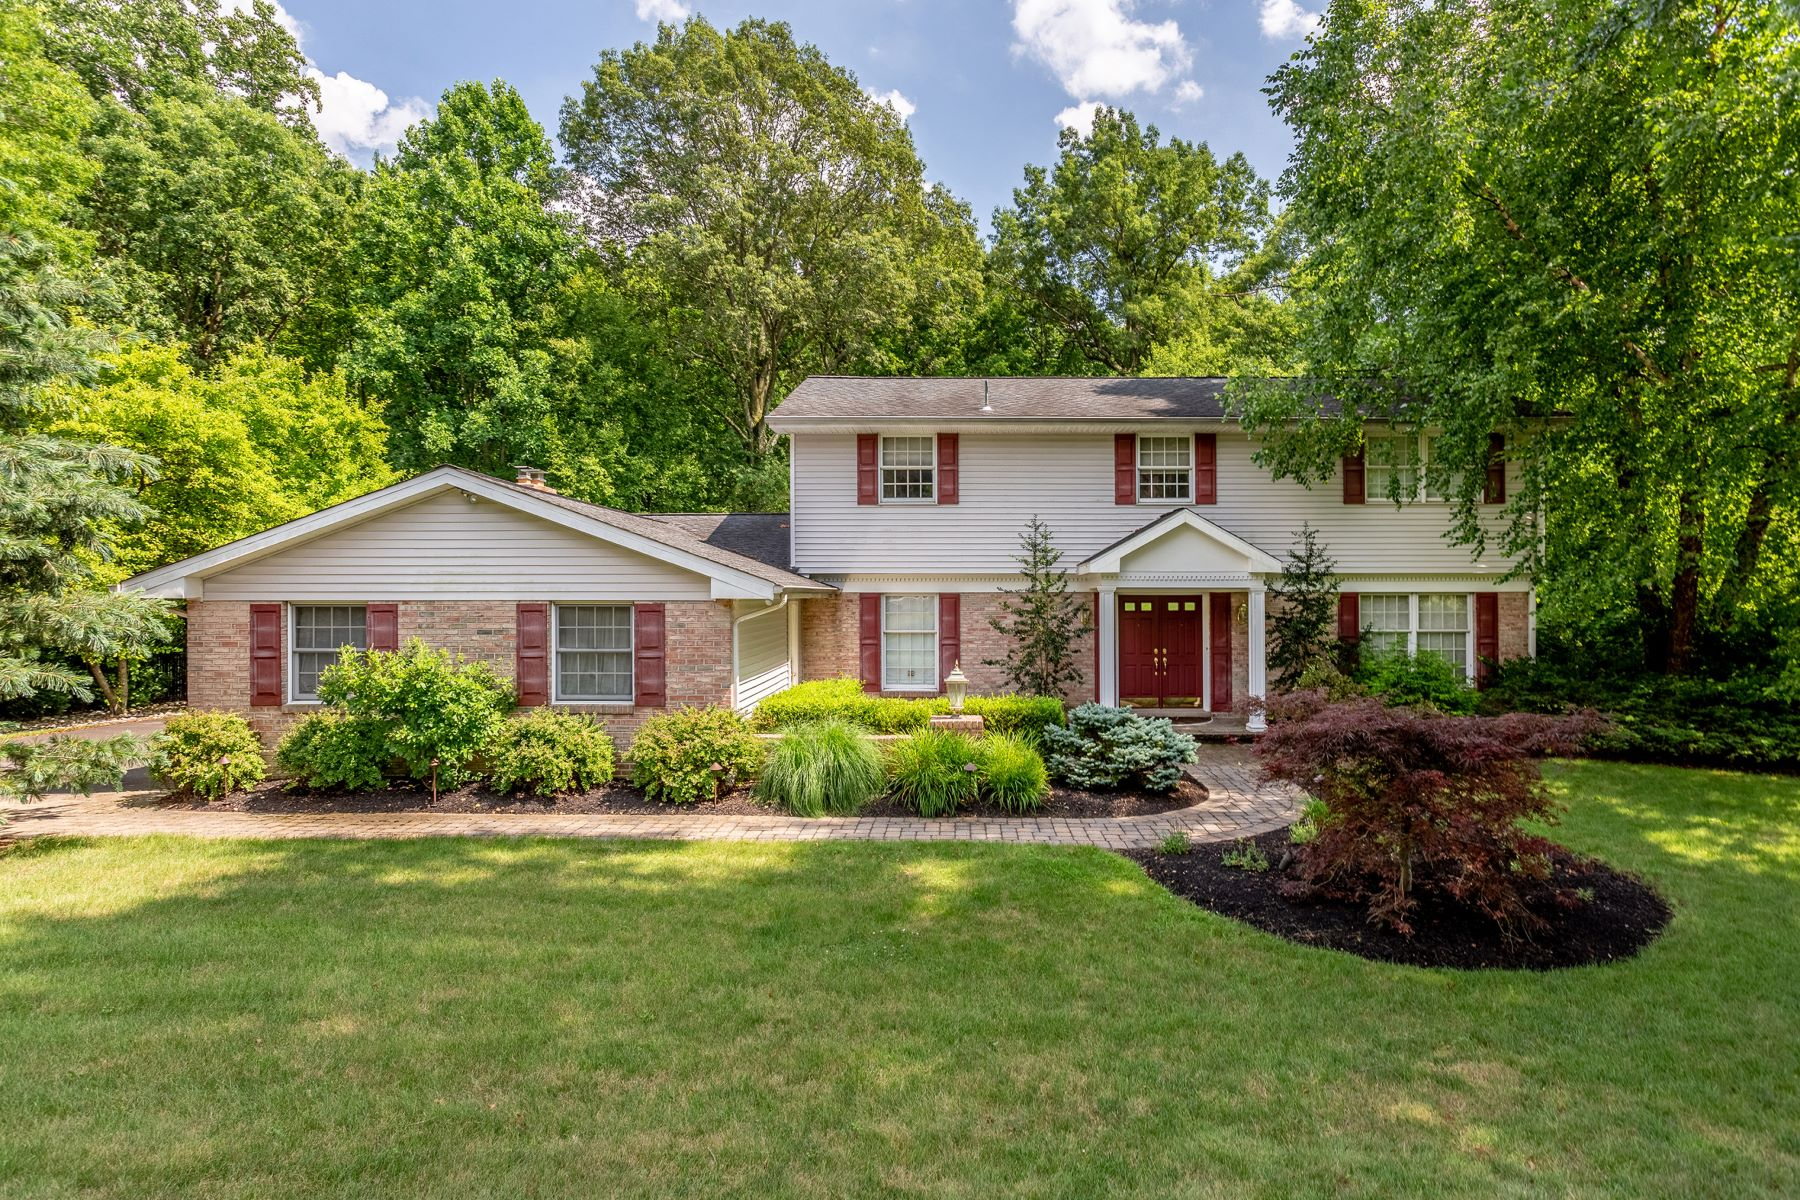 Single Family Homes for Sale at Hunters Run 5678 S DEER RUN RD Doylestown, Pennsylvania 18902 United States